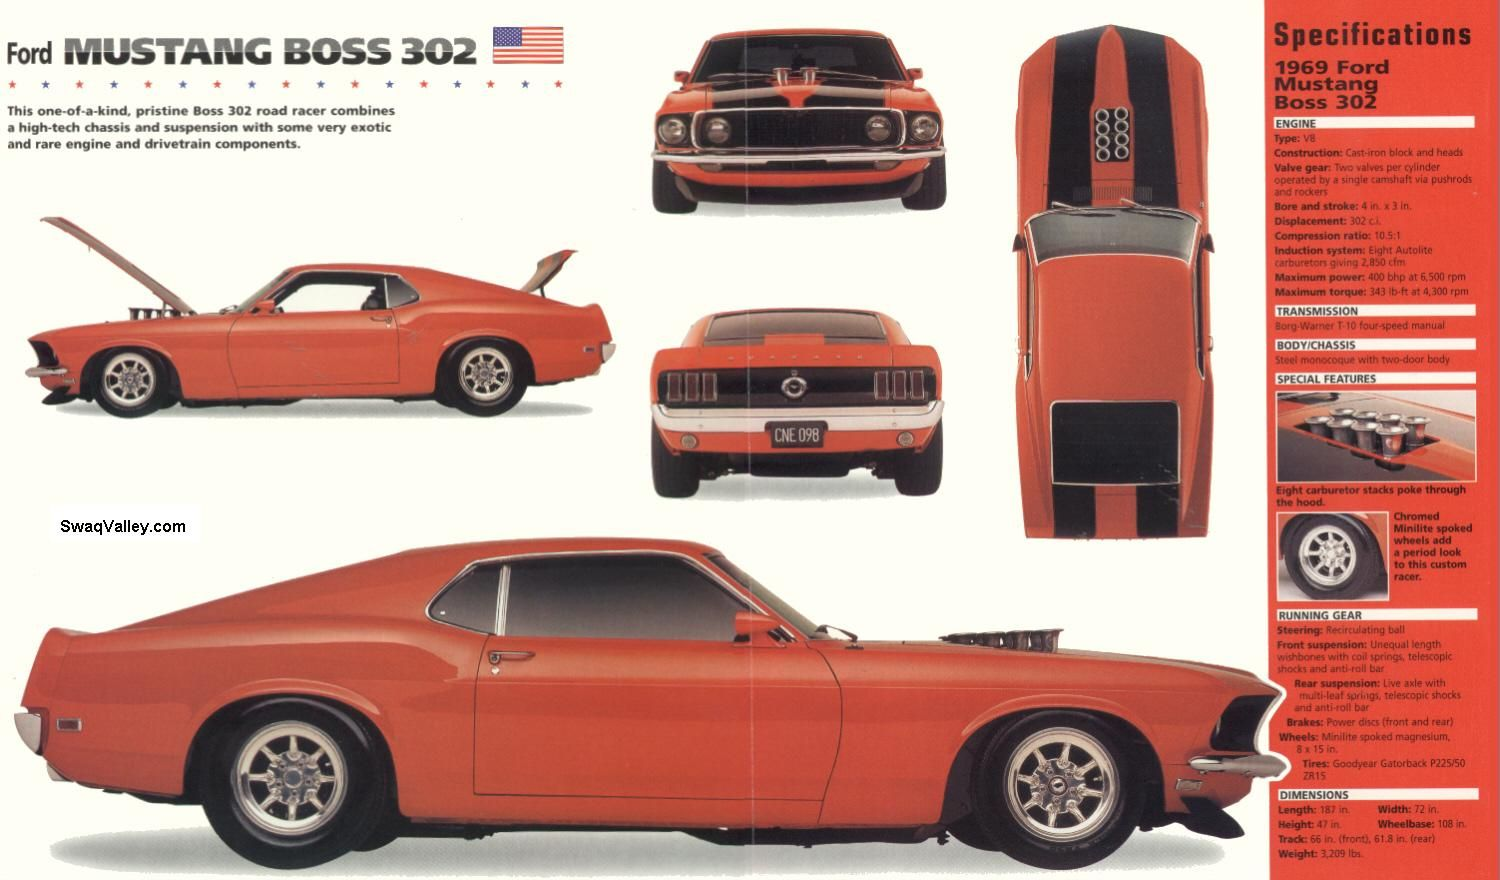 Google Image Result for http://gomotors.net/pics/Ford/ford-mustang ...